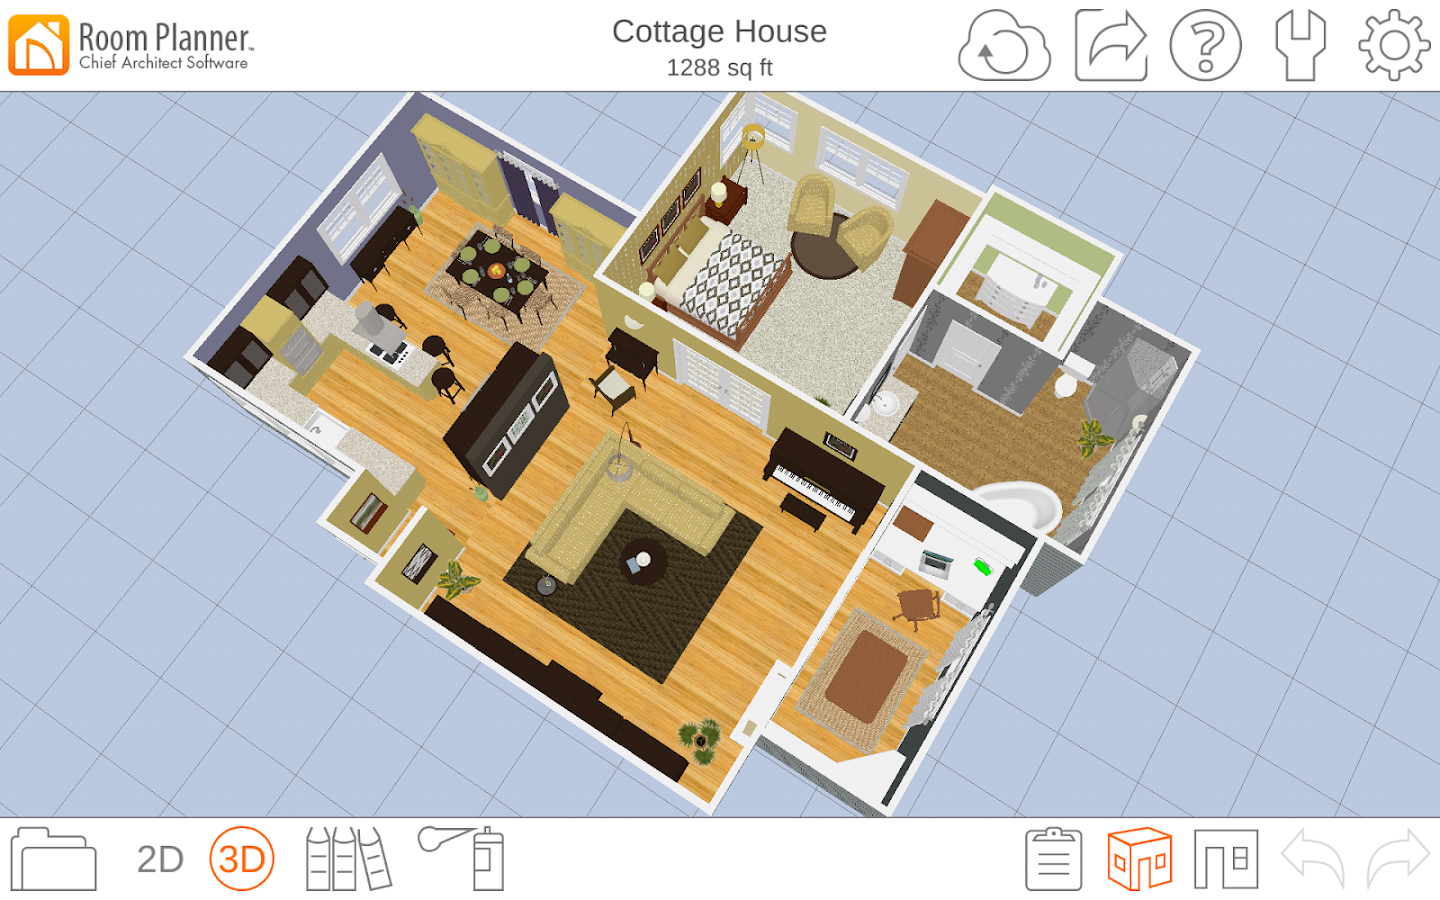 Room planner home design android apps on google play Room design app